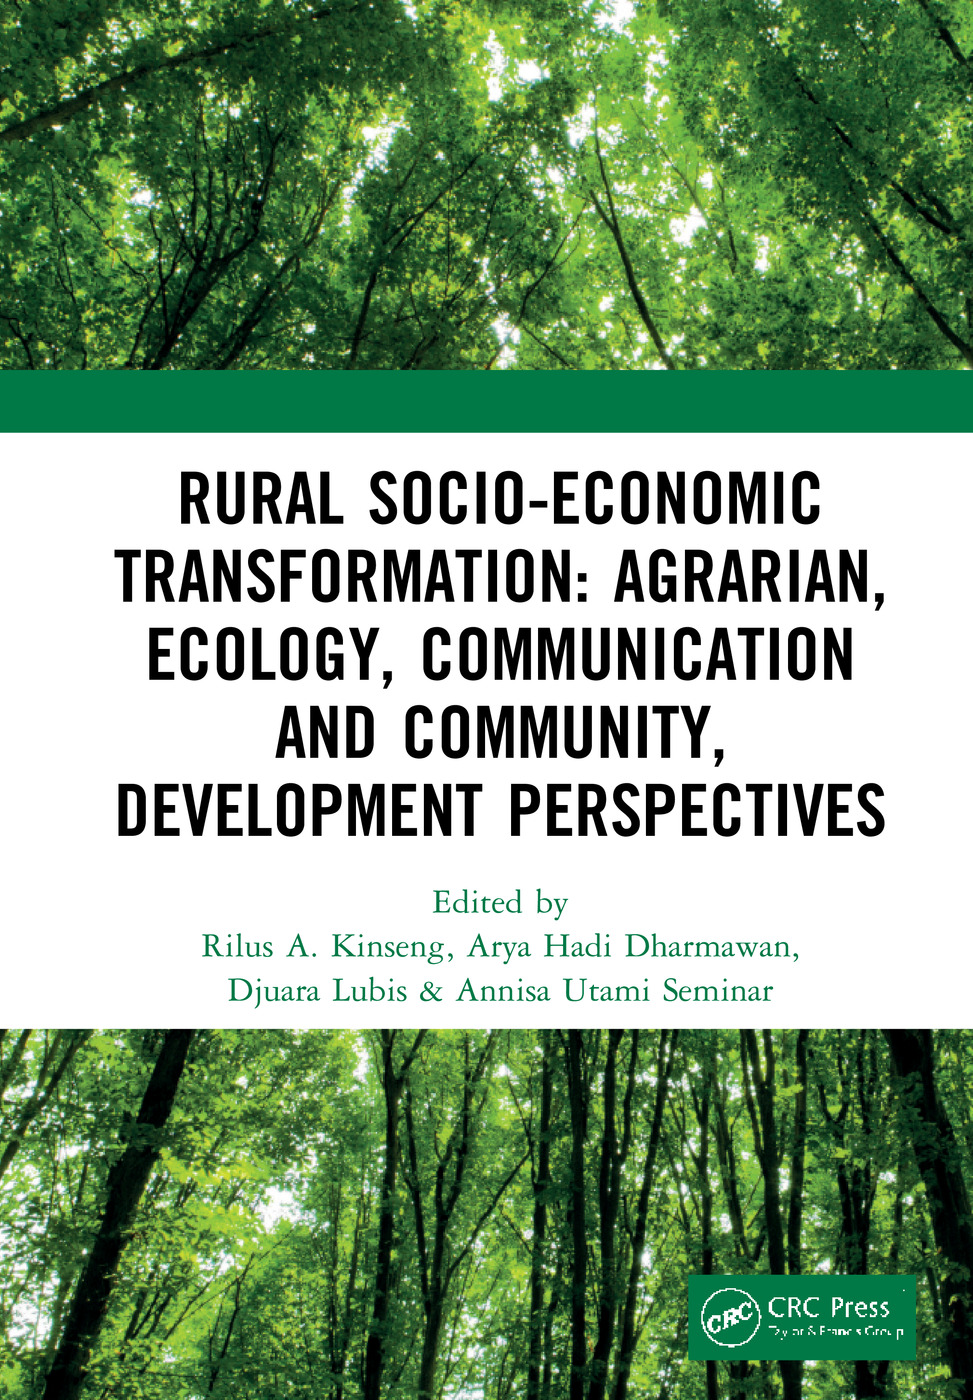 Rural Socio-Economic Transformation: Agrarian, Ecology, Communication and Community, Development Perspectives: Proceedings of the International Confernece on Rural Socio-Economic Transformation: Agrarian, Ecology, Communication and Community Development Perspectives (RUSET 2018), November 14-15, 2018, Bogor, West Java, Indonesia, 1st Edition (Hardback) book cover